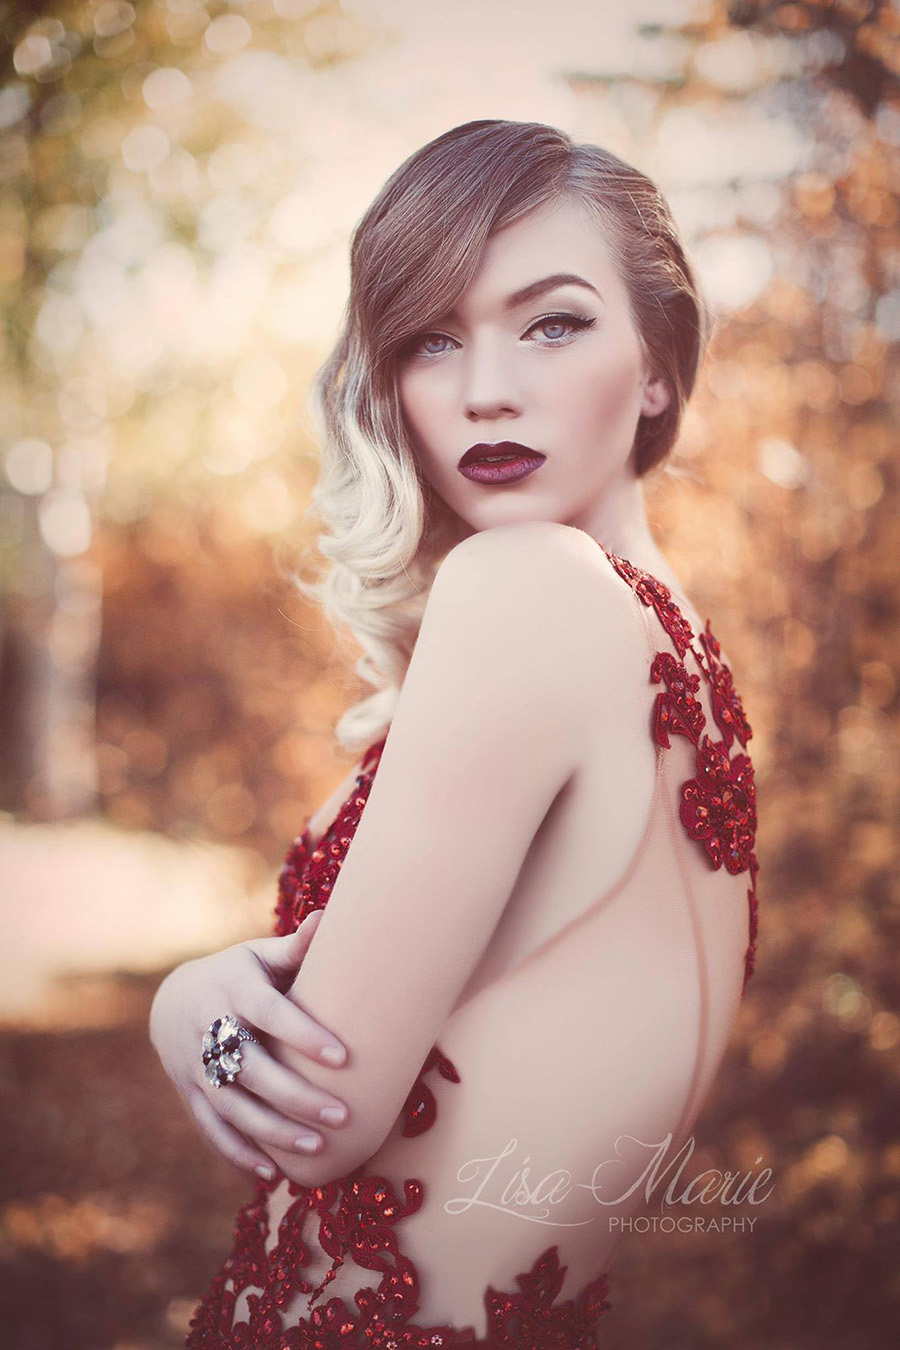 Lisa-Marie Photography - PS Action | Madison